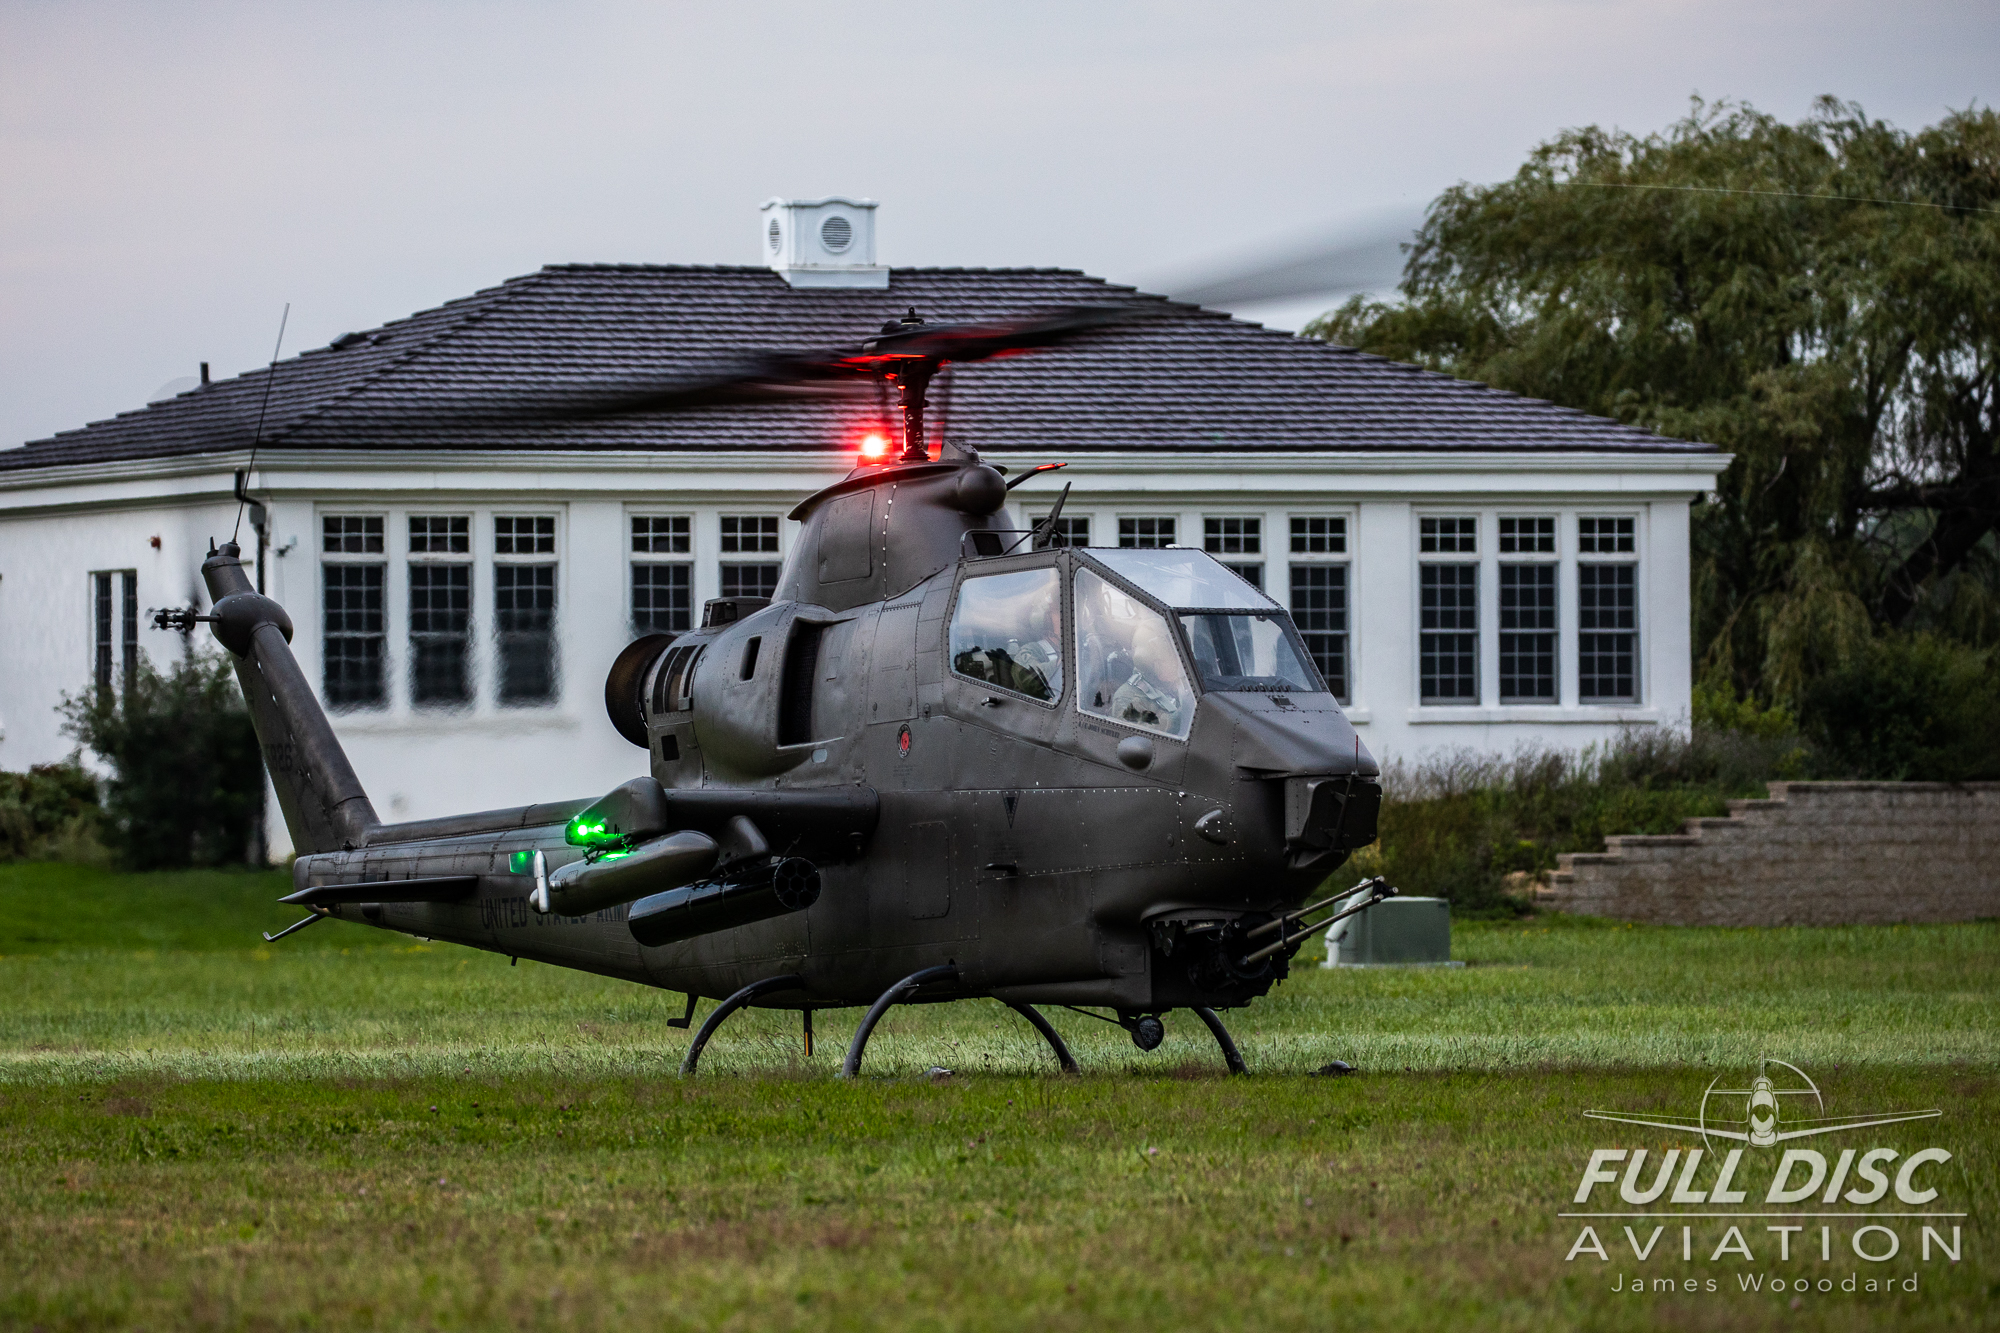 FullDiscAviation_JamesWoodard-August 24, 2018-52.jpg